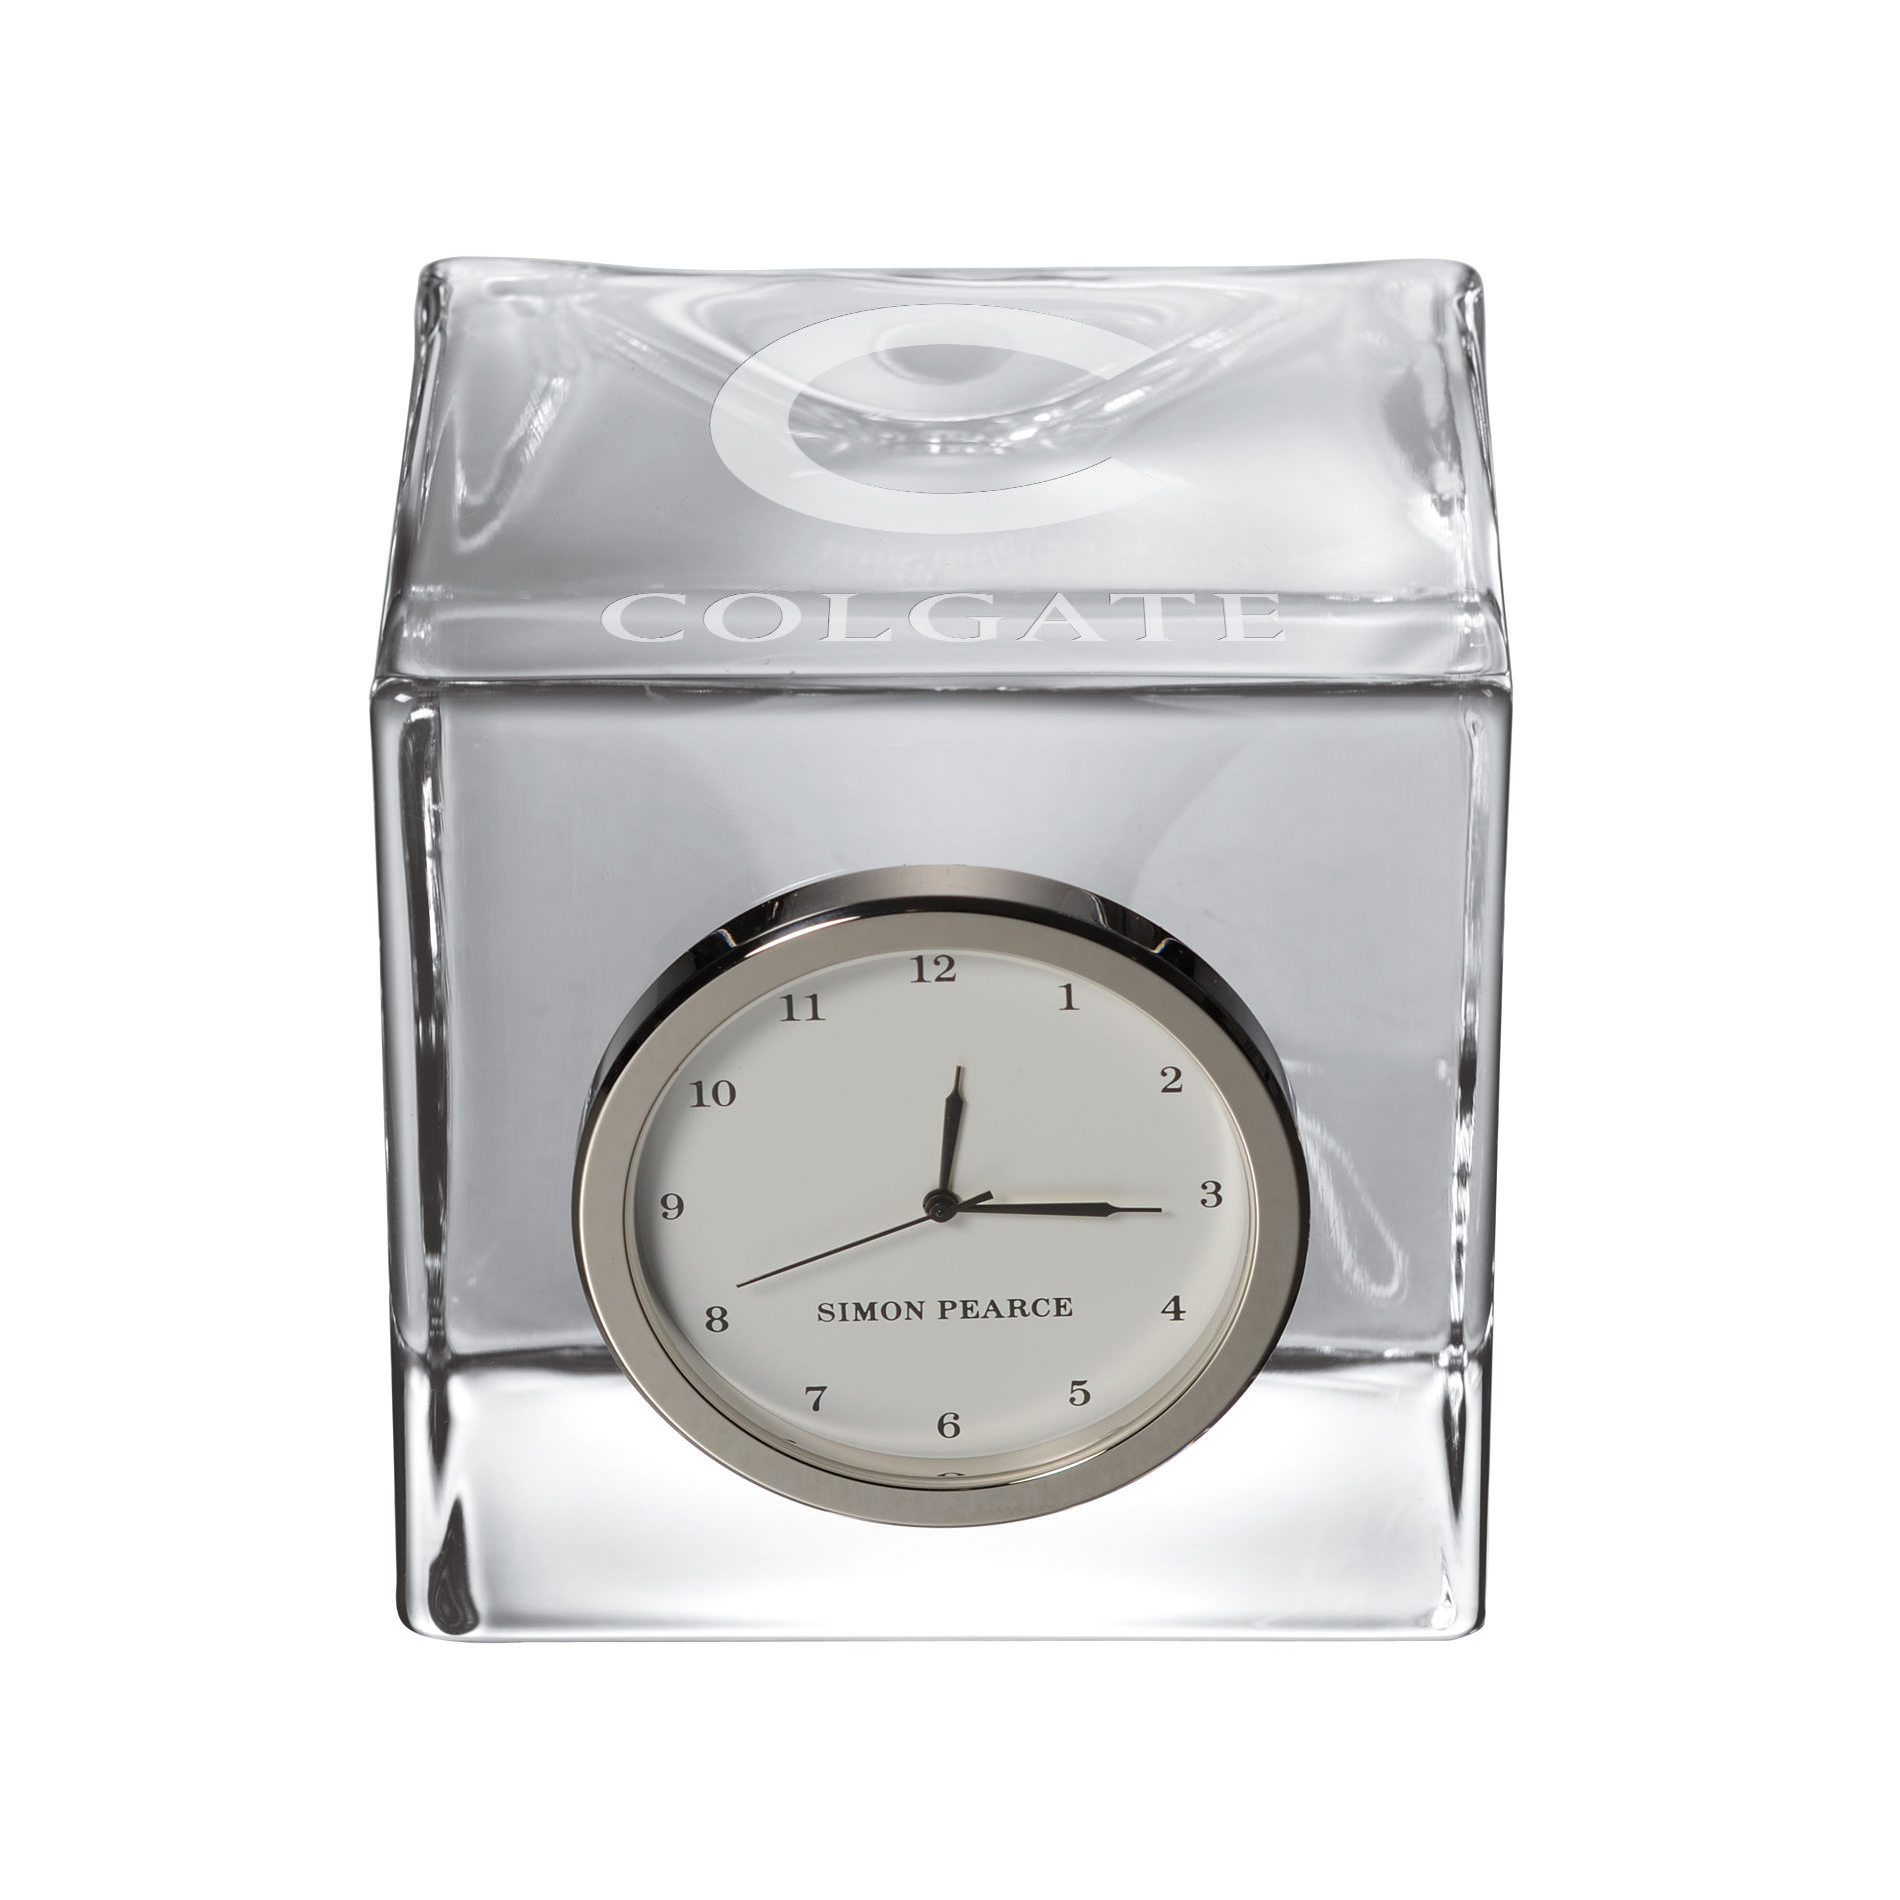 Colgate Glass Desk Clock by Simon Pearce